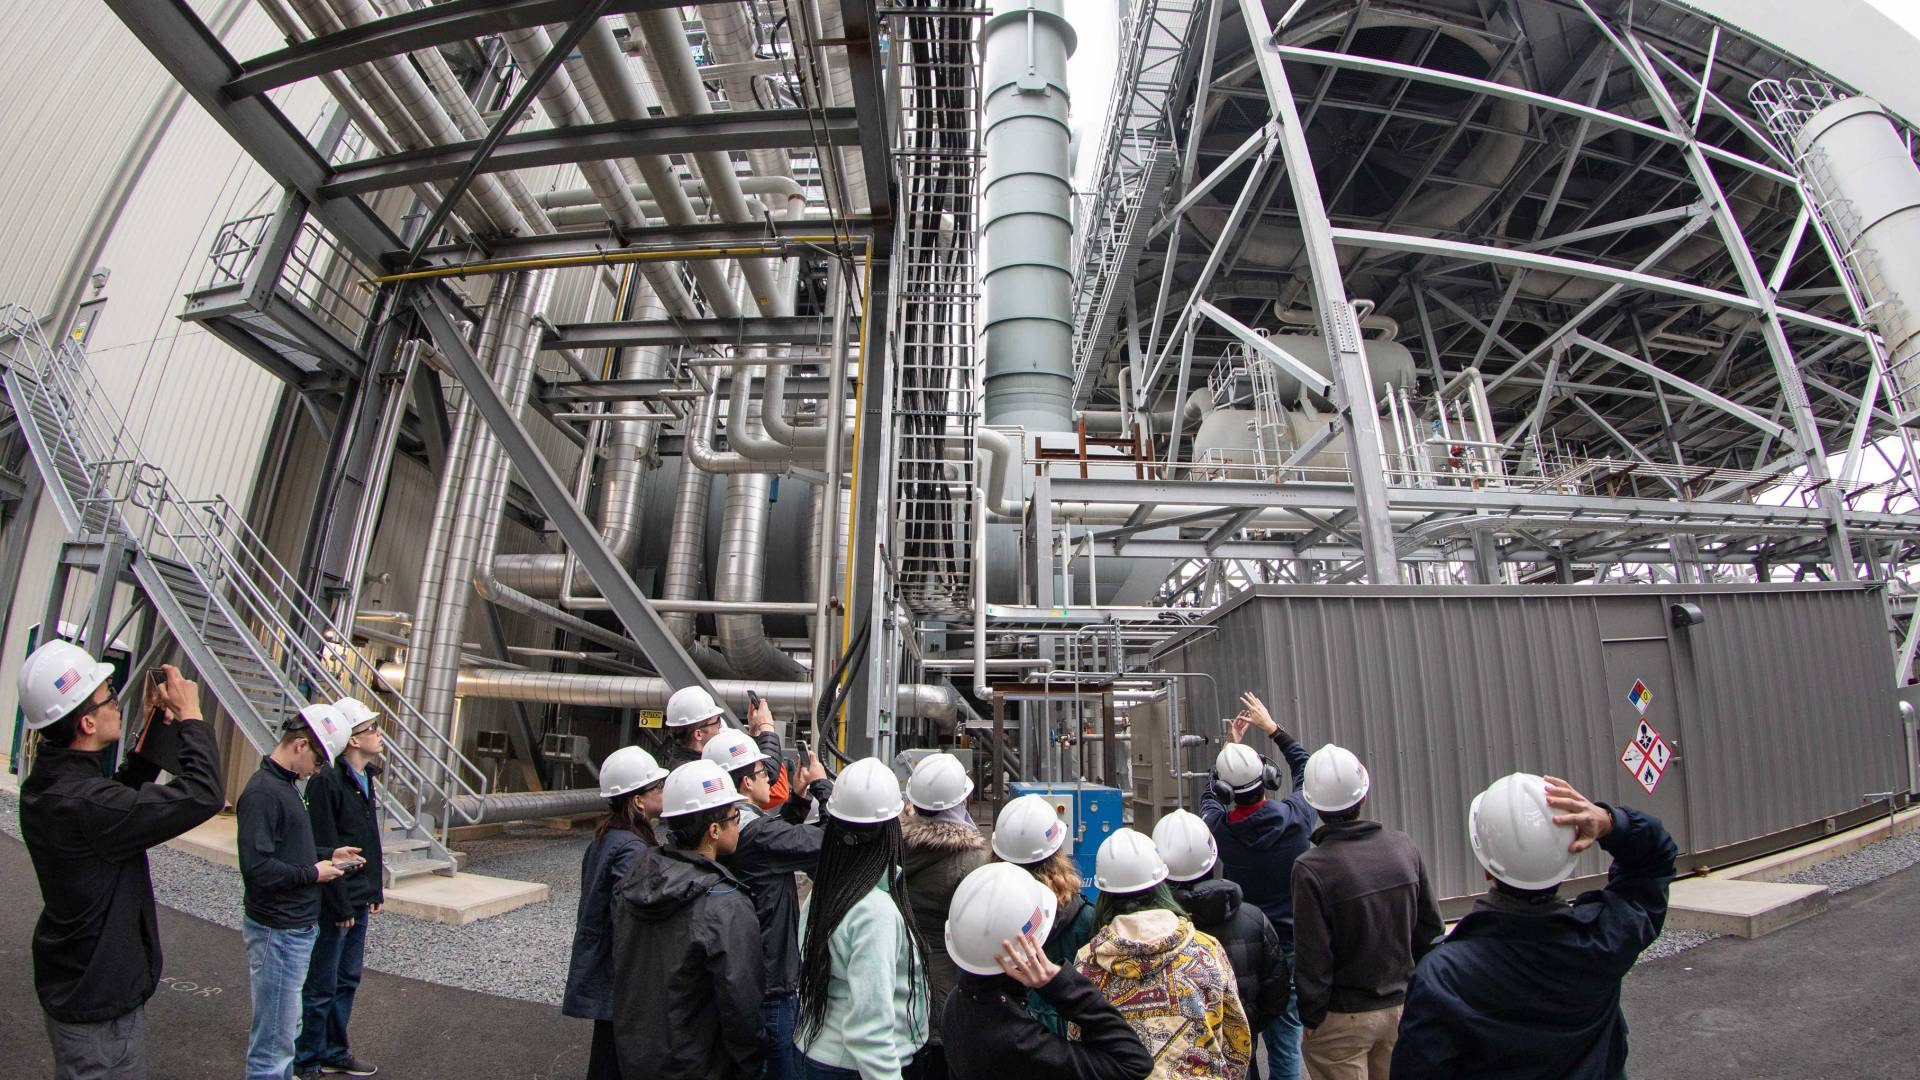 students in hard hats look at part of a power plant